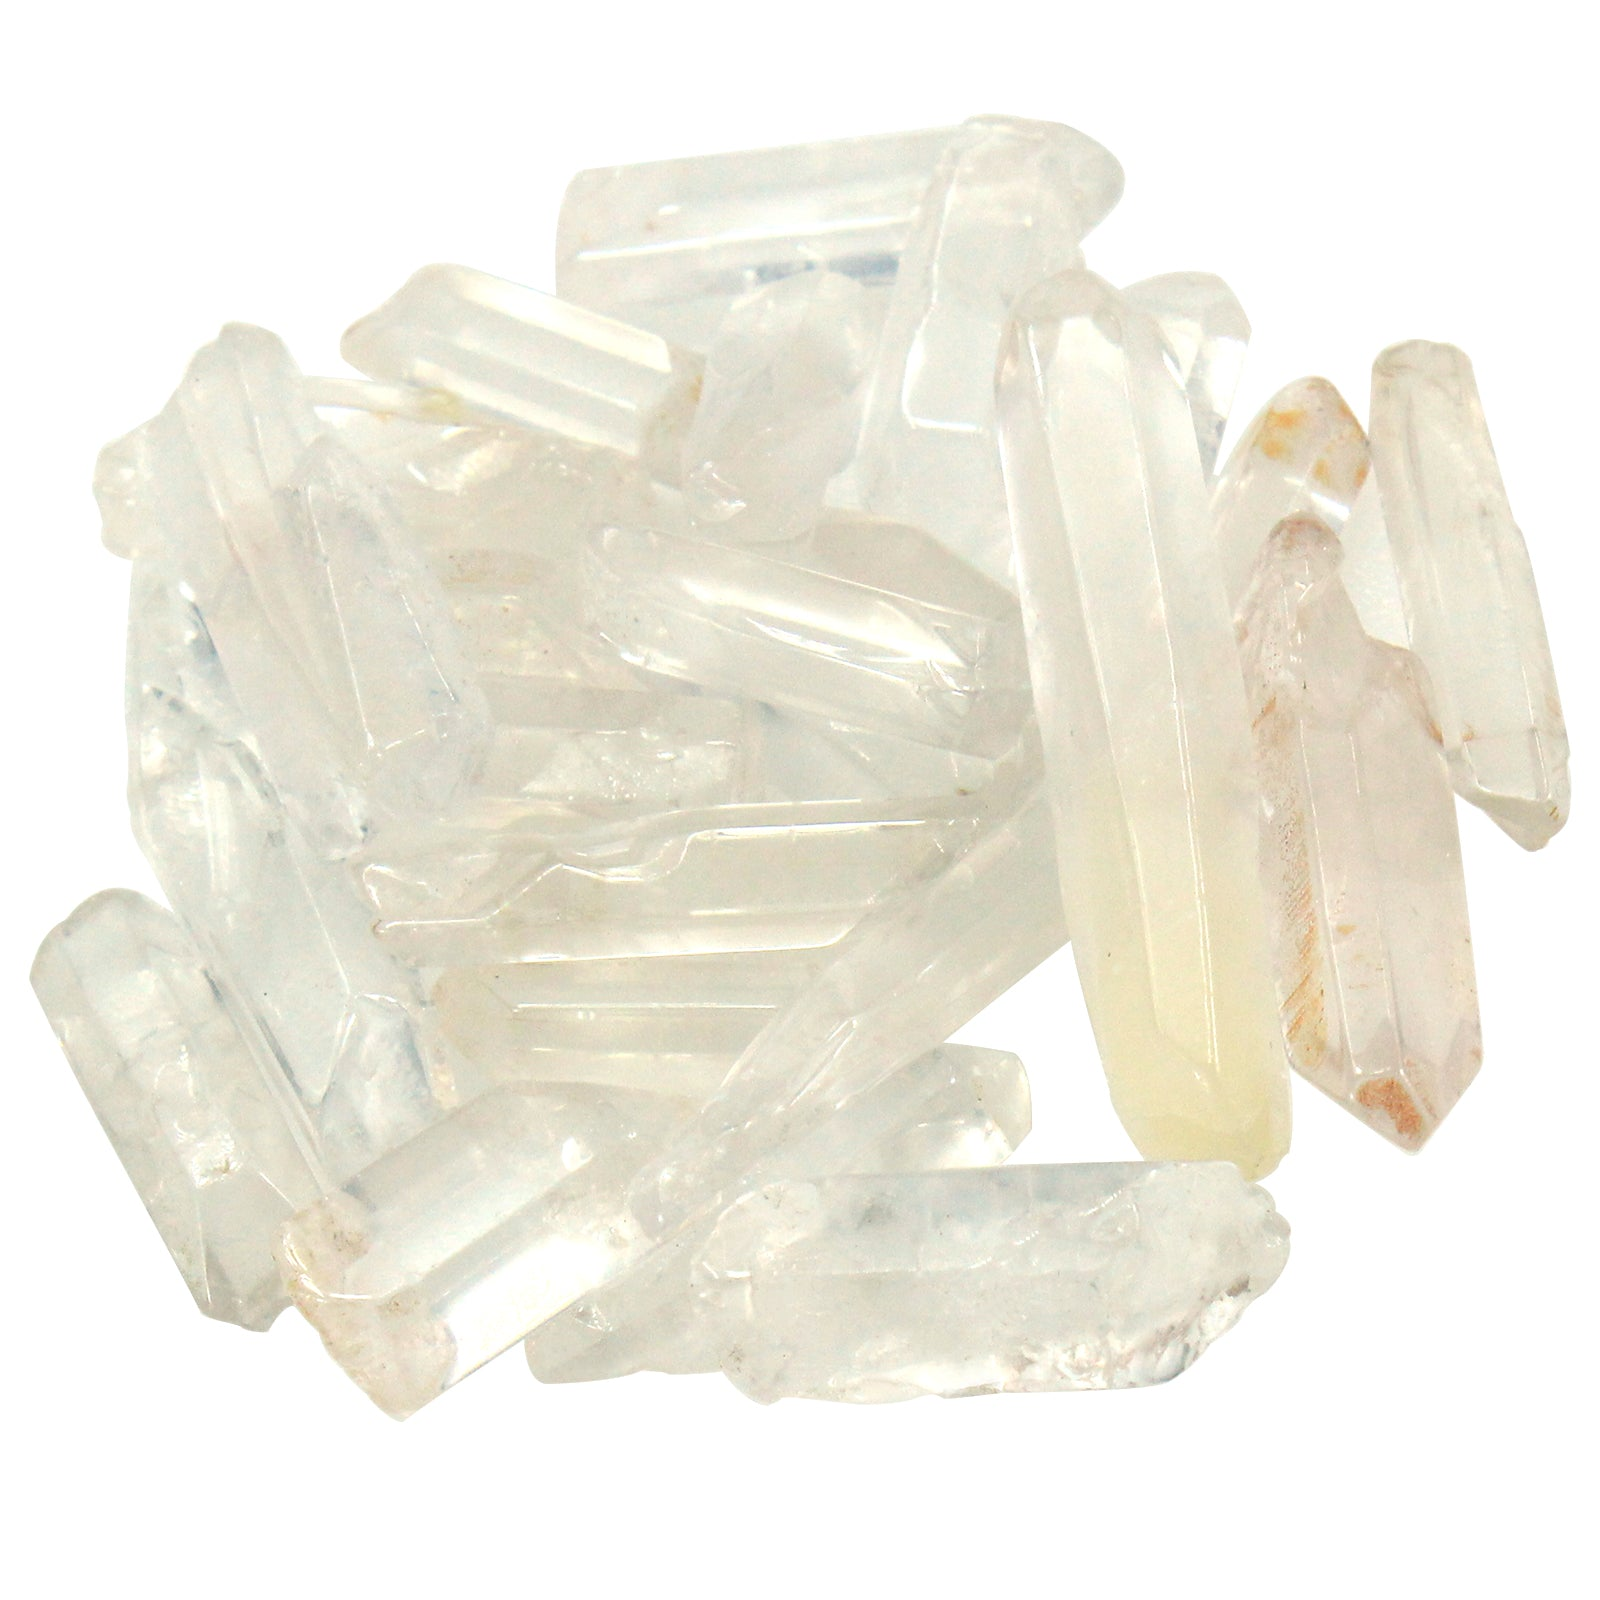 Clear Pointed Quartz Crystals 100g